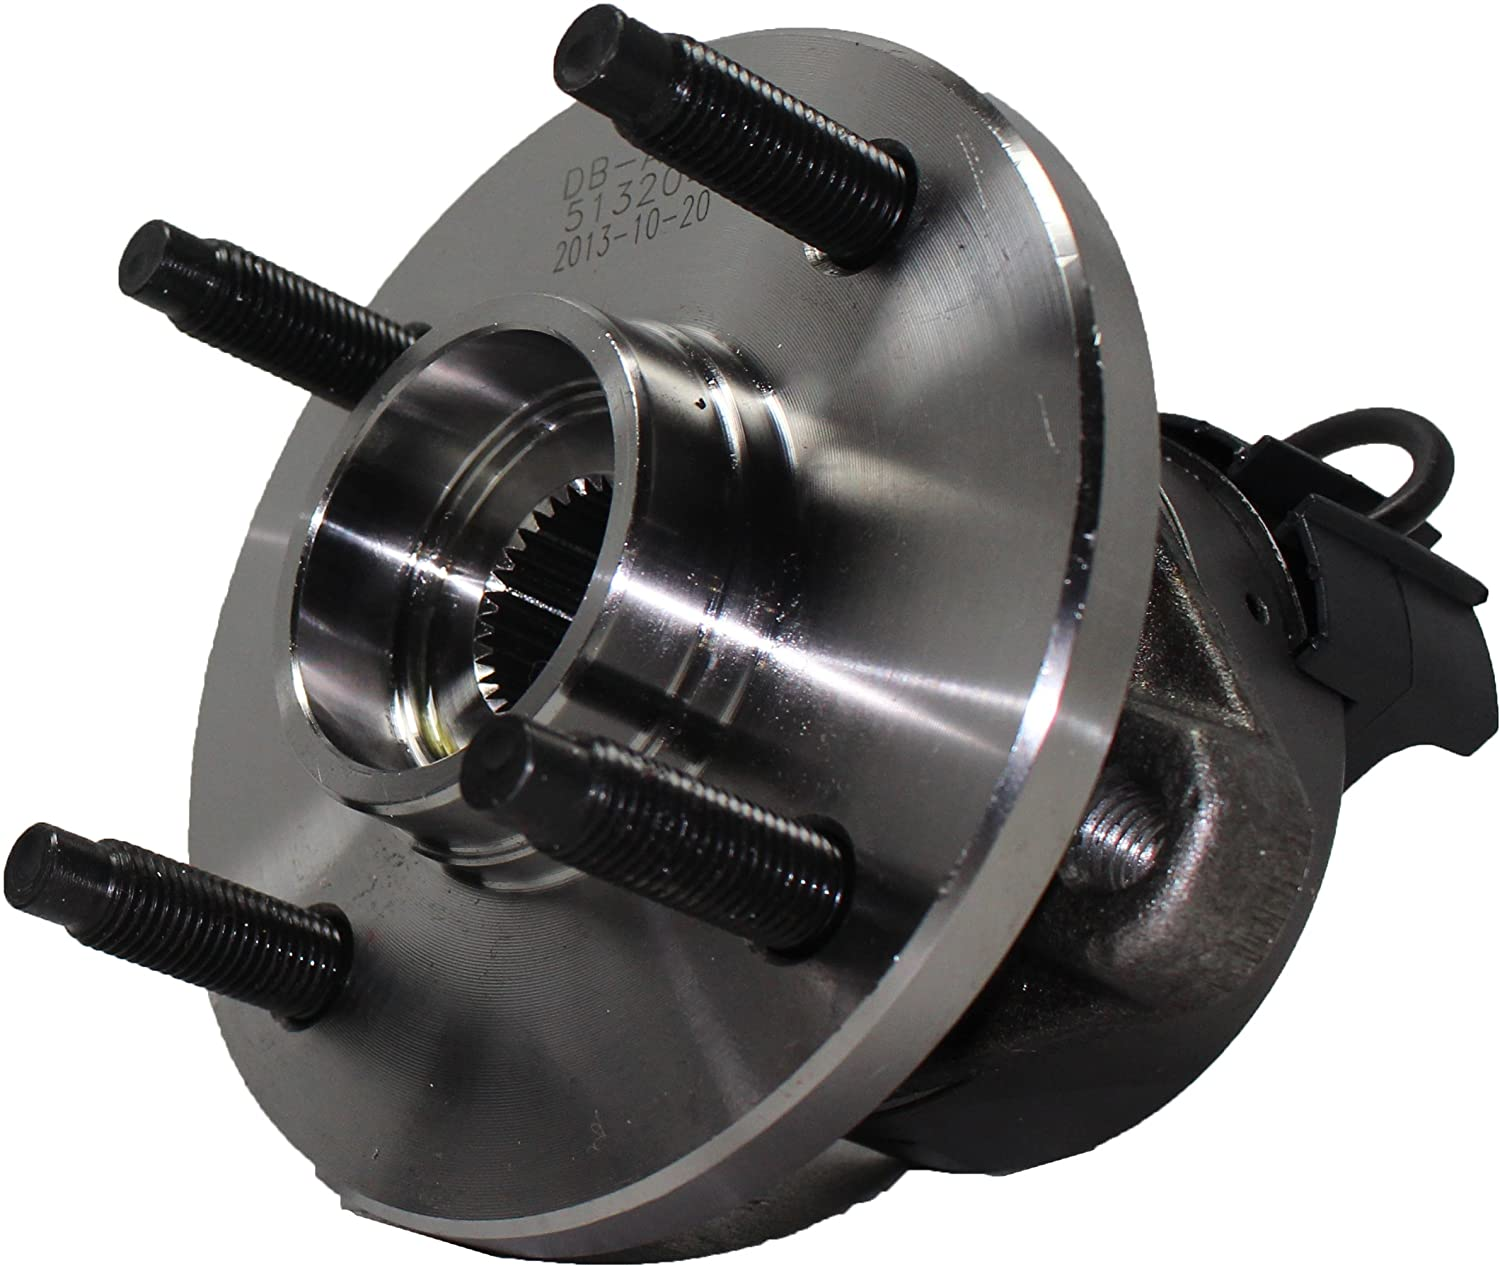 - 2005-06 Pontiac Pursuit - 2005-10 Chevy Cobalt - Detroit Axle 4-LUG Front Wheel Hub and Bearing Assembly Pair for 4-Wheel ABS Models 2007-10 Pontiac G5 2003-2007 Saturn Ion